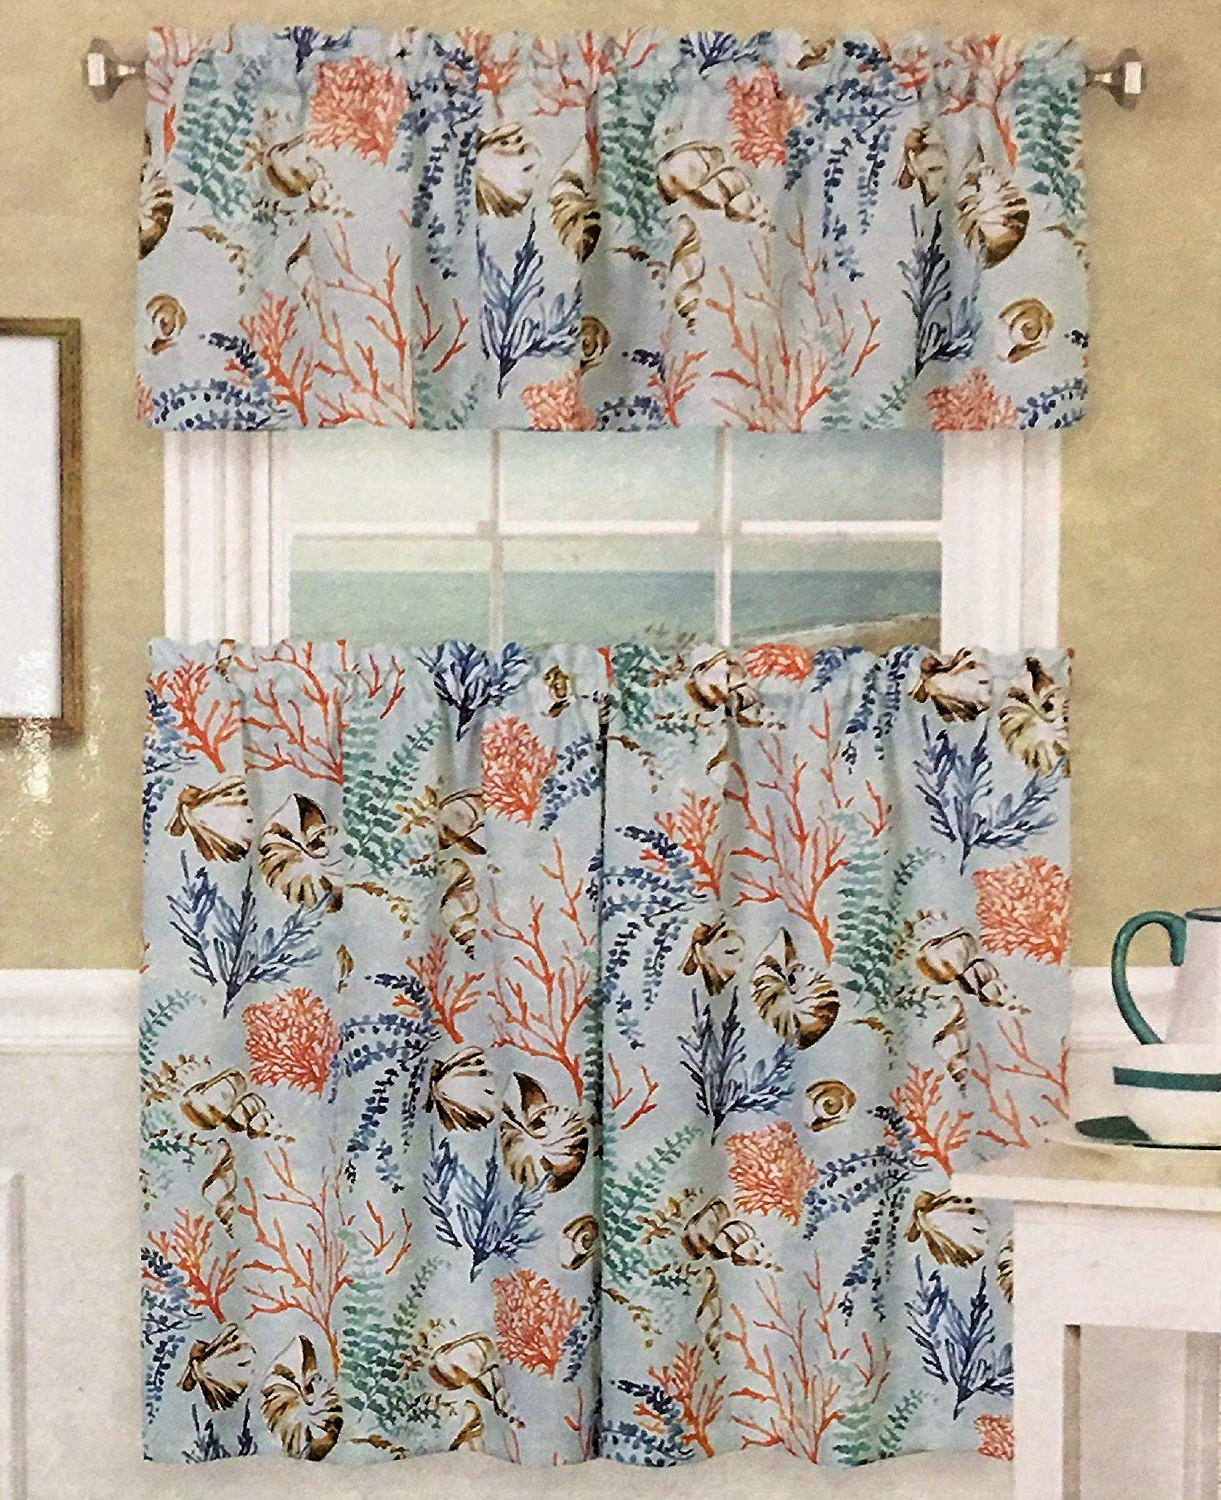 Coastal Tier And Valance Window Curtain Sets Regarding Most Up To Date Amazon: Elrene Home Coastal Setting Design Crafted With (View 10 of 20)